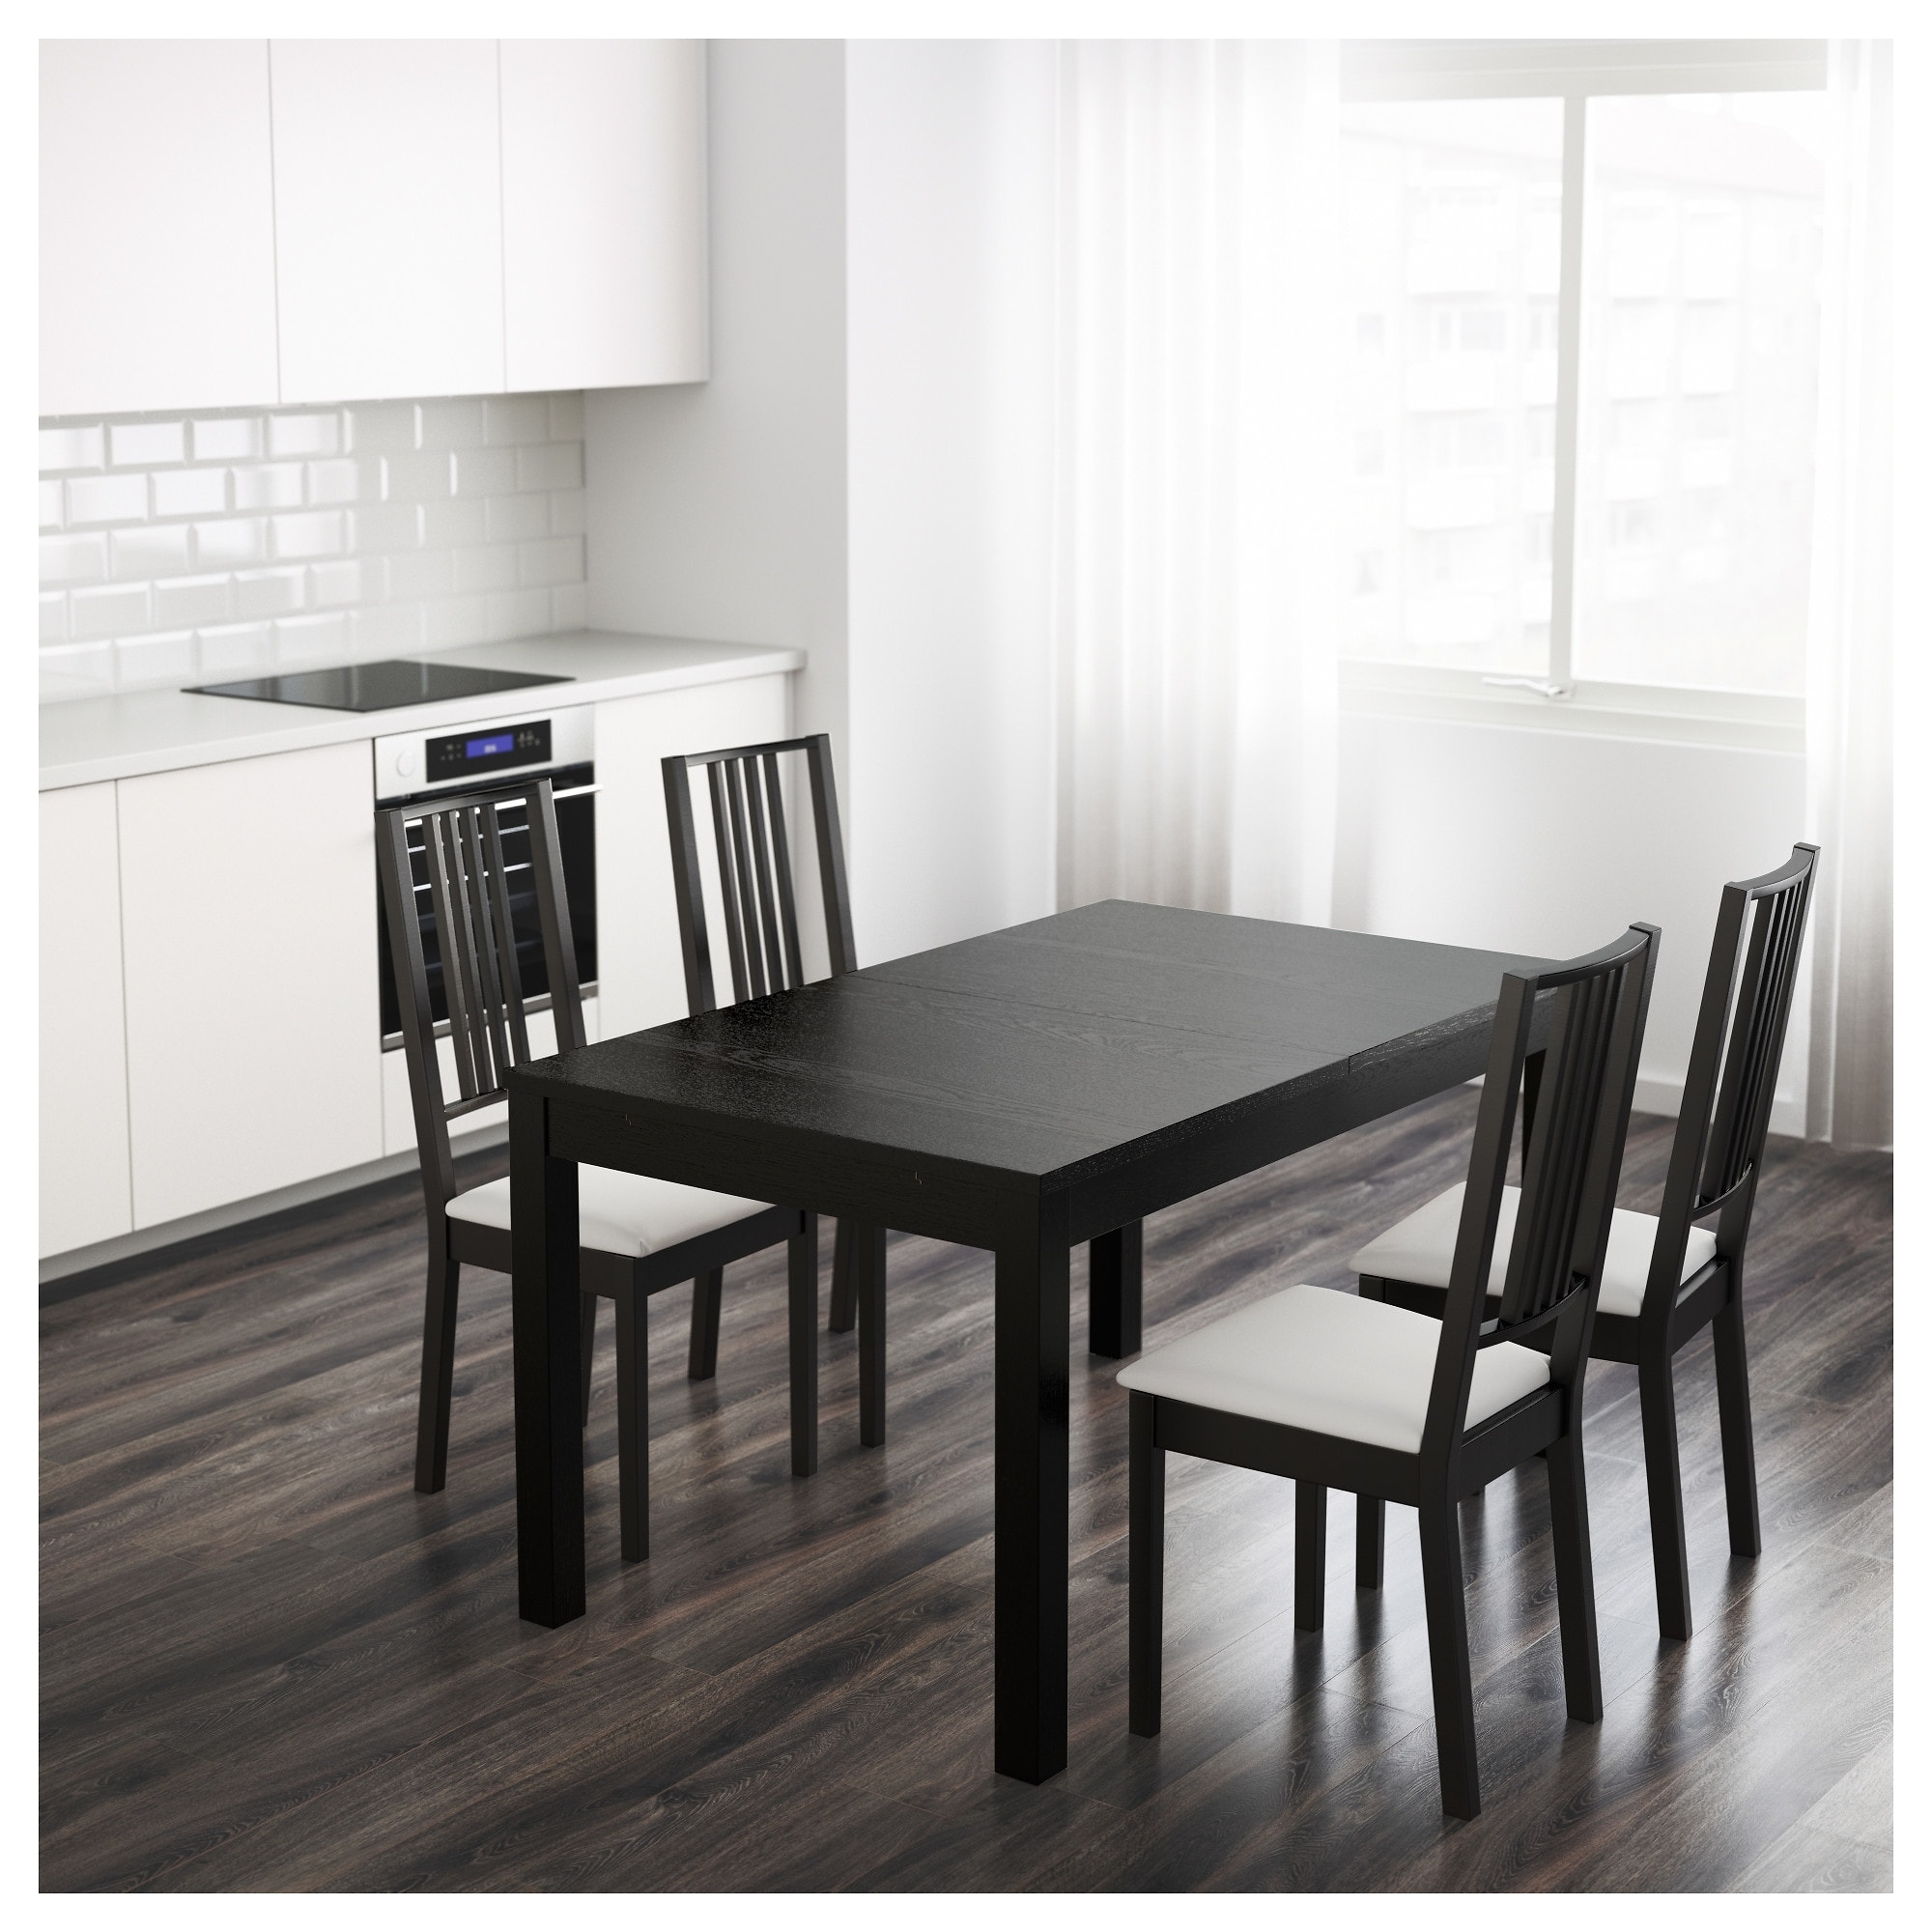 Bjursta Extendable Table Brown Black 140/180/220 X 84 Cm – Ikea Pertaining To Preferred Black Extendable Dining Tables And Chairs (Gallery 15 of 25)